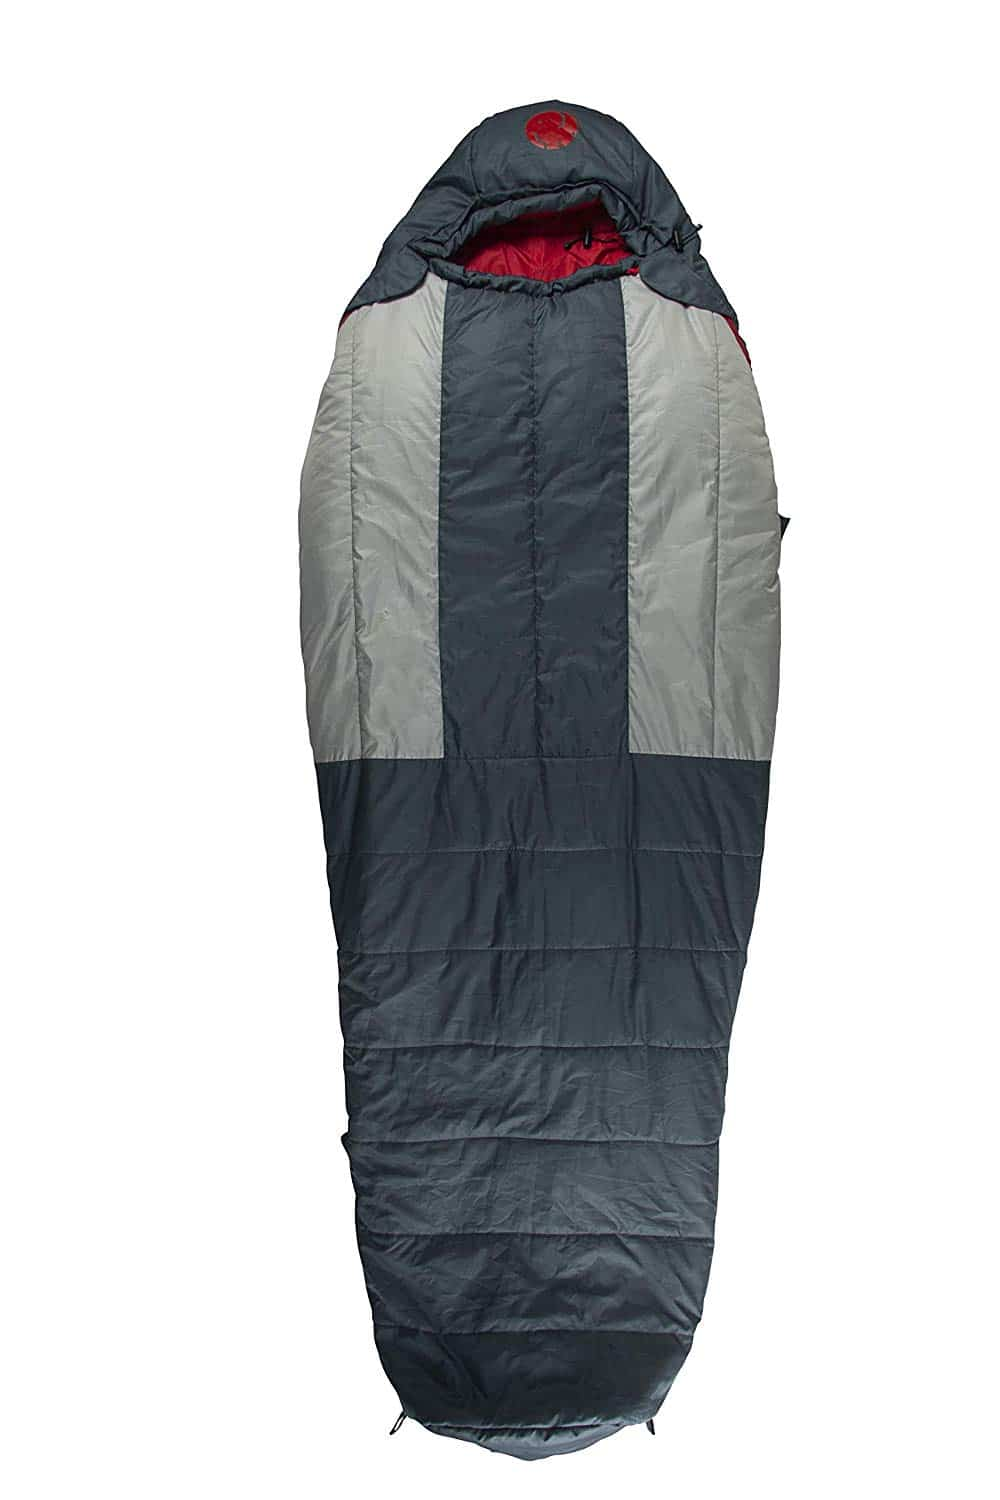 OmniCore Designs Multi Down Mummy Sleeping Bag (-10F to 10F) with Compression Stuff Sack and Storage Mesh Sack